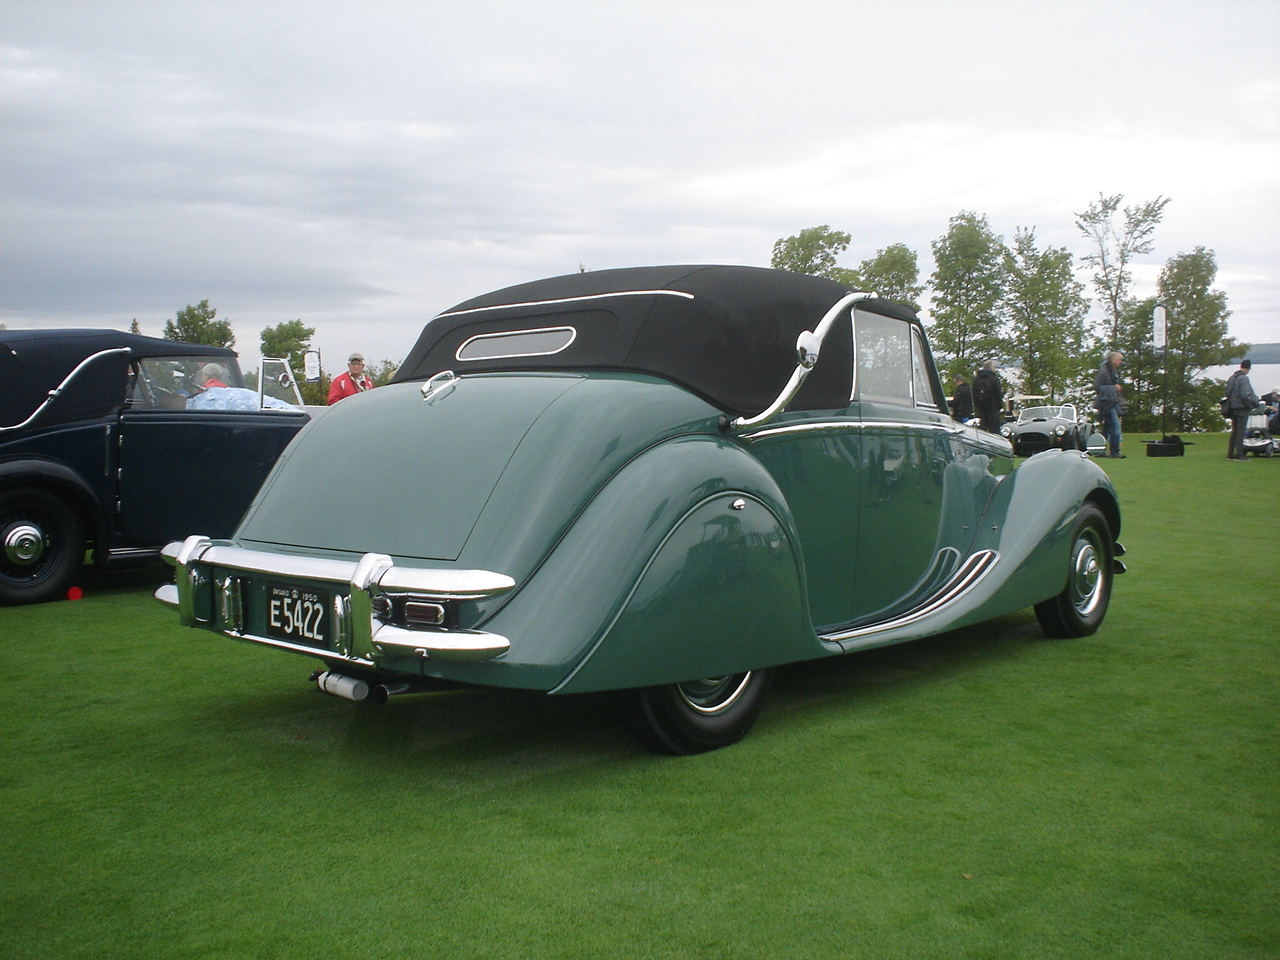 1950 Jaguar Mark V Drophead Coupe -3.JPG